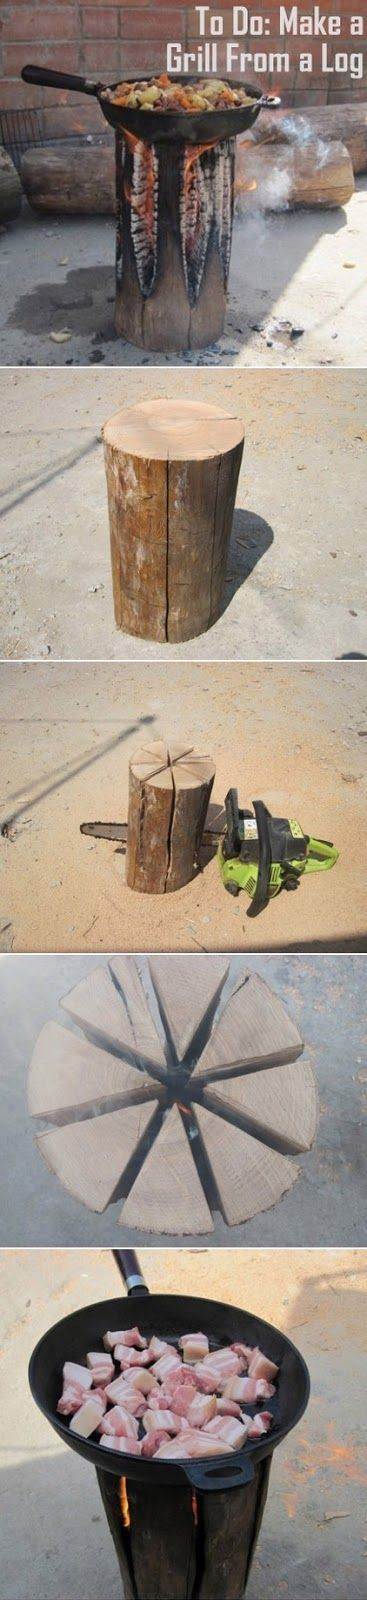 How to Make Swedish Fire Log - I definitely need to try this.